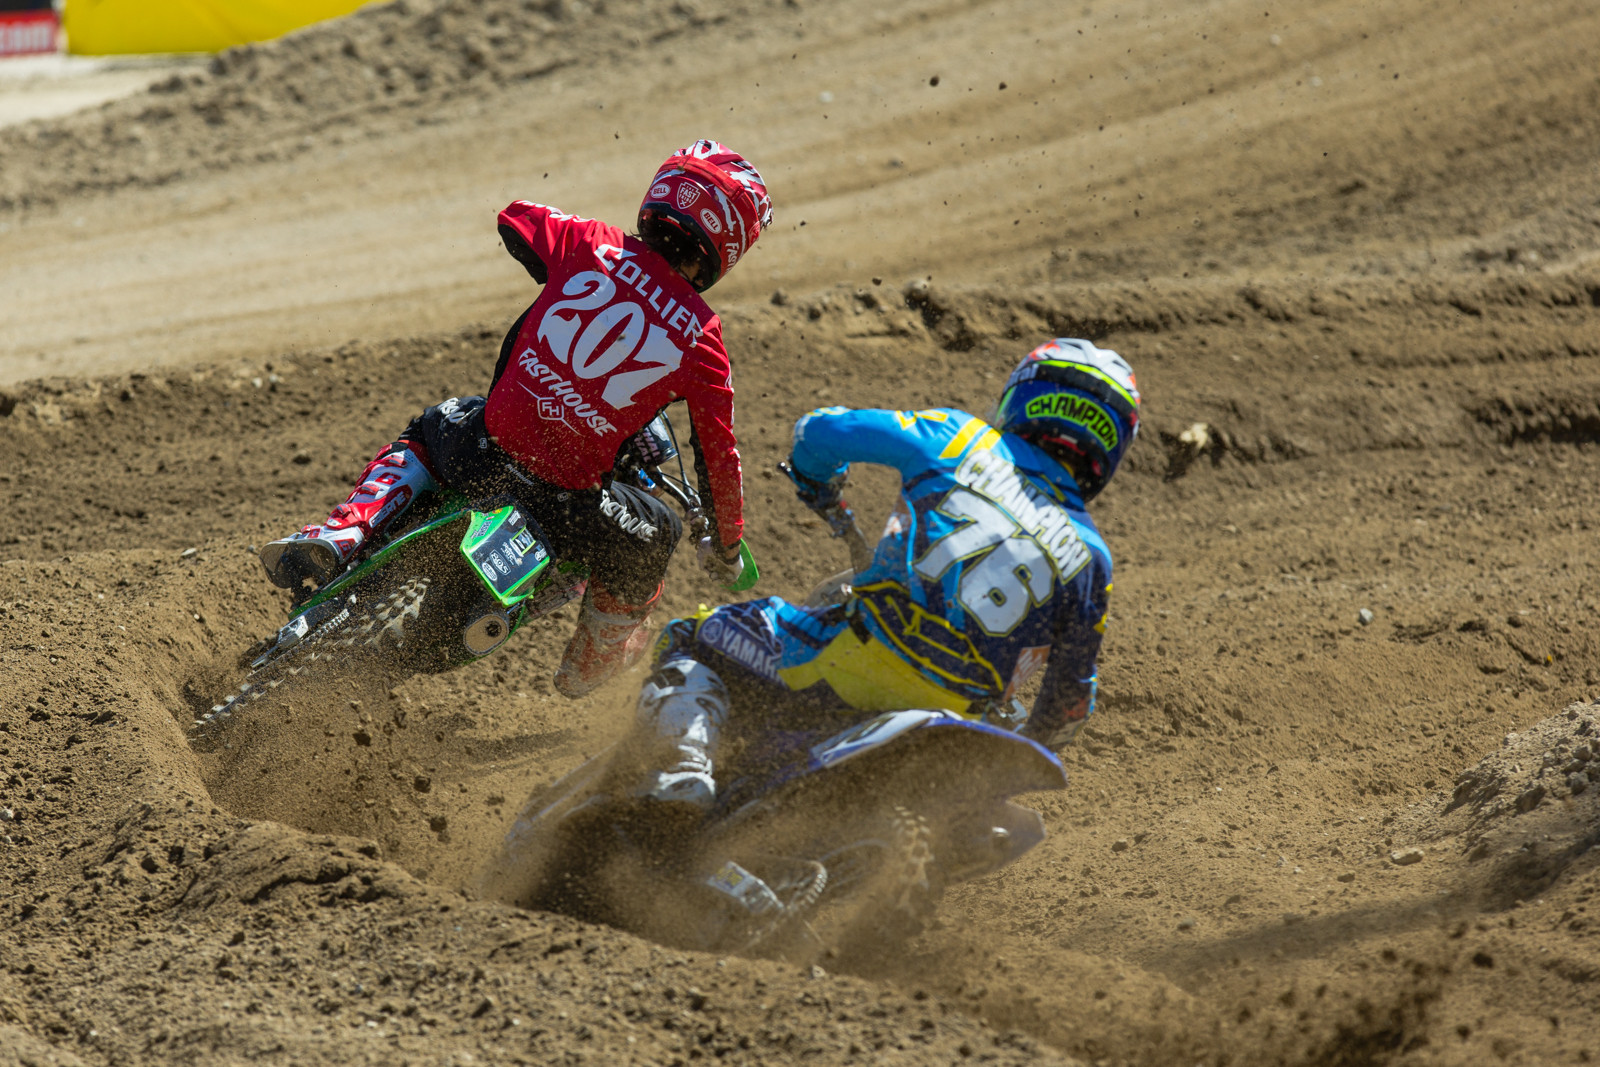 Sean Collier and Scott Champion - 2016 MTA World Two-Stroke Nationals - Motocross Pictures - Vital MX